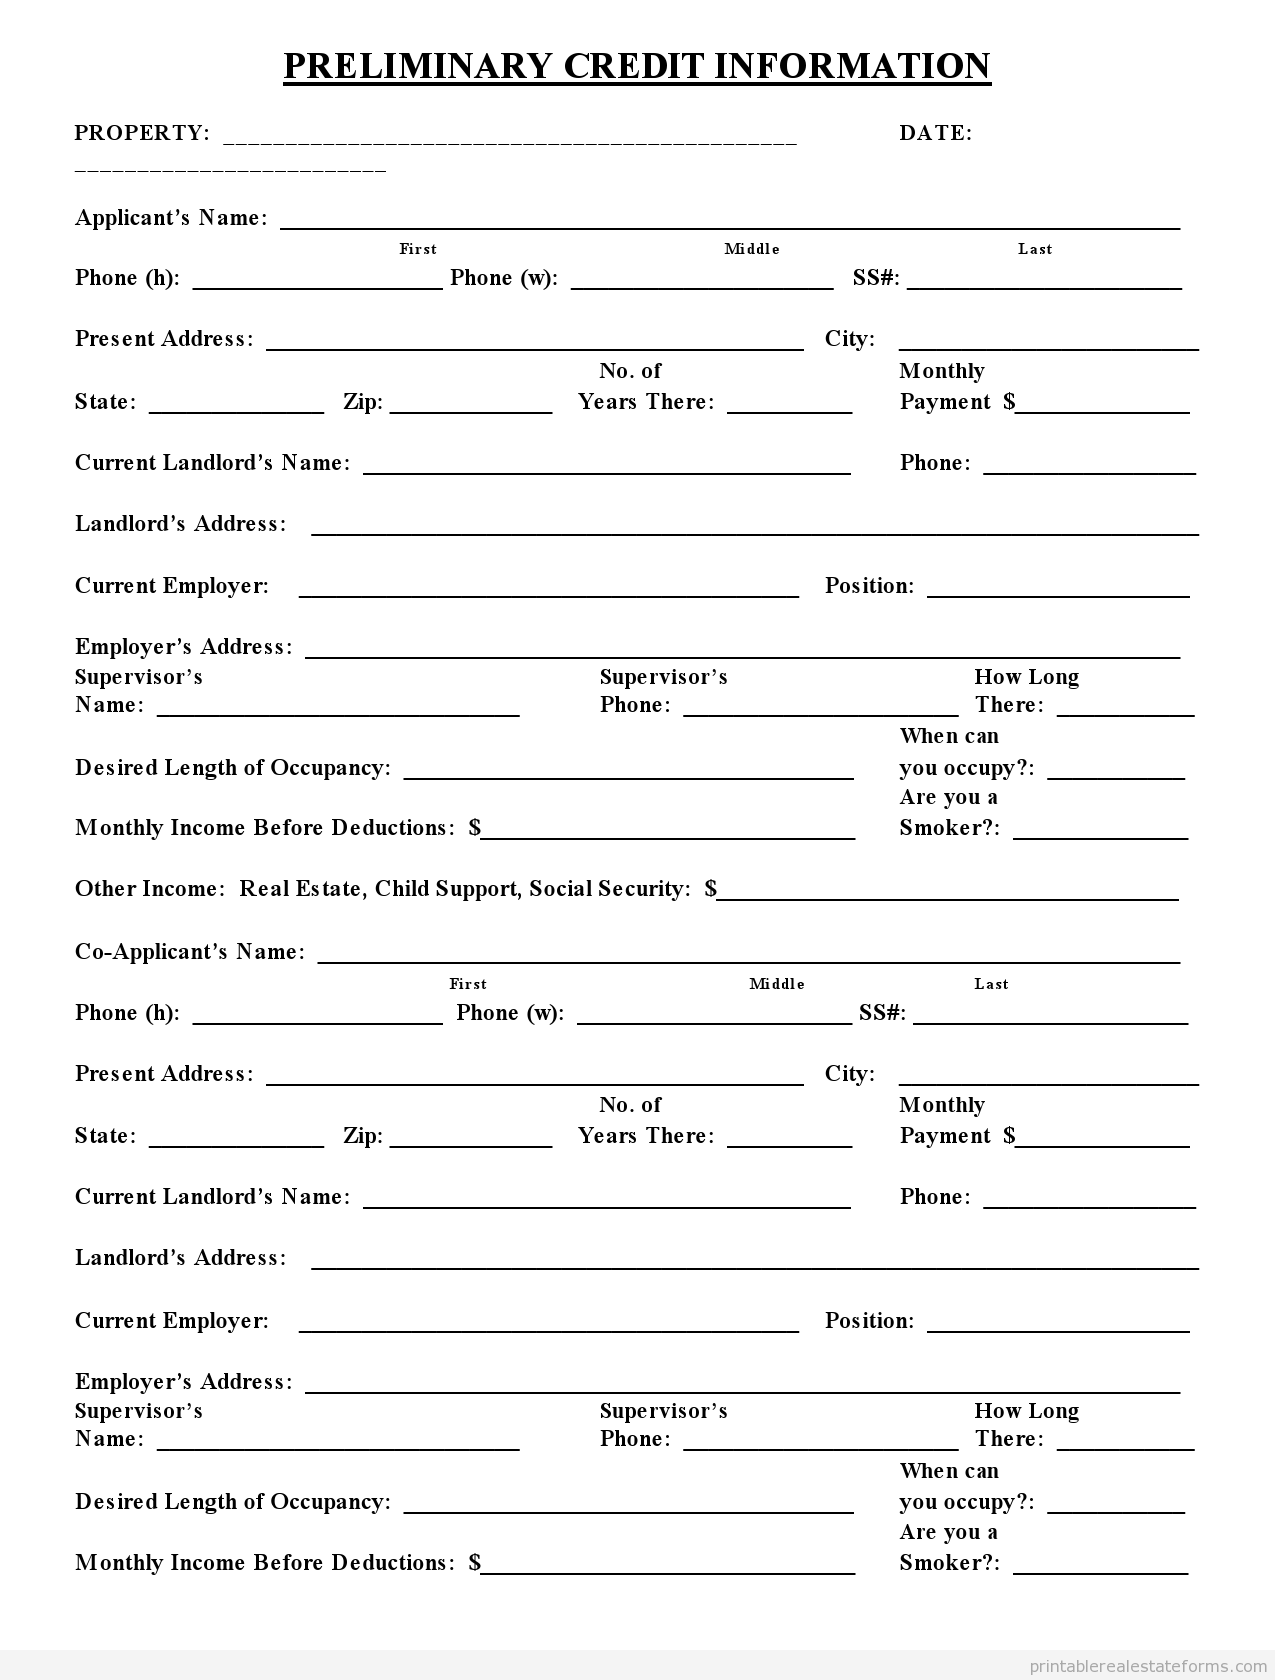 Sample Printable preliminary credit application Form – Sample Credit Application Form